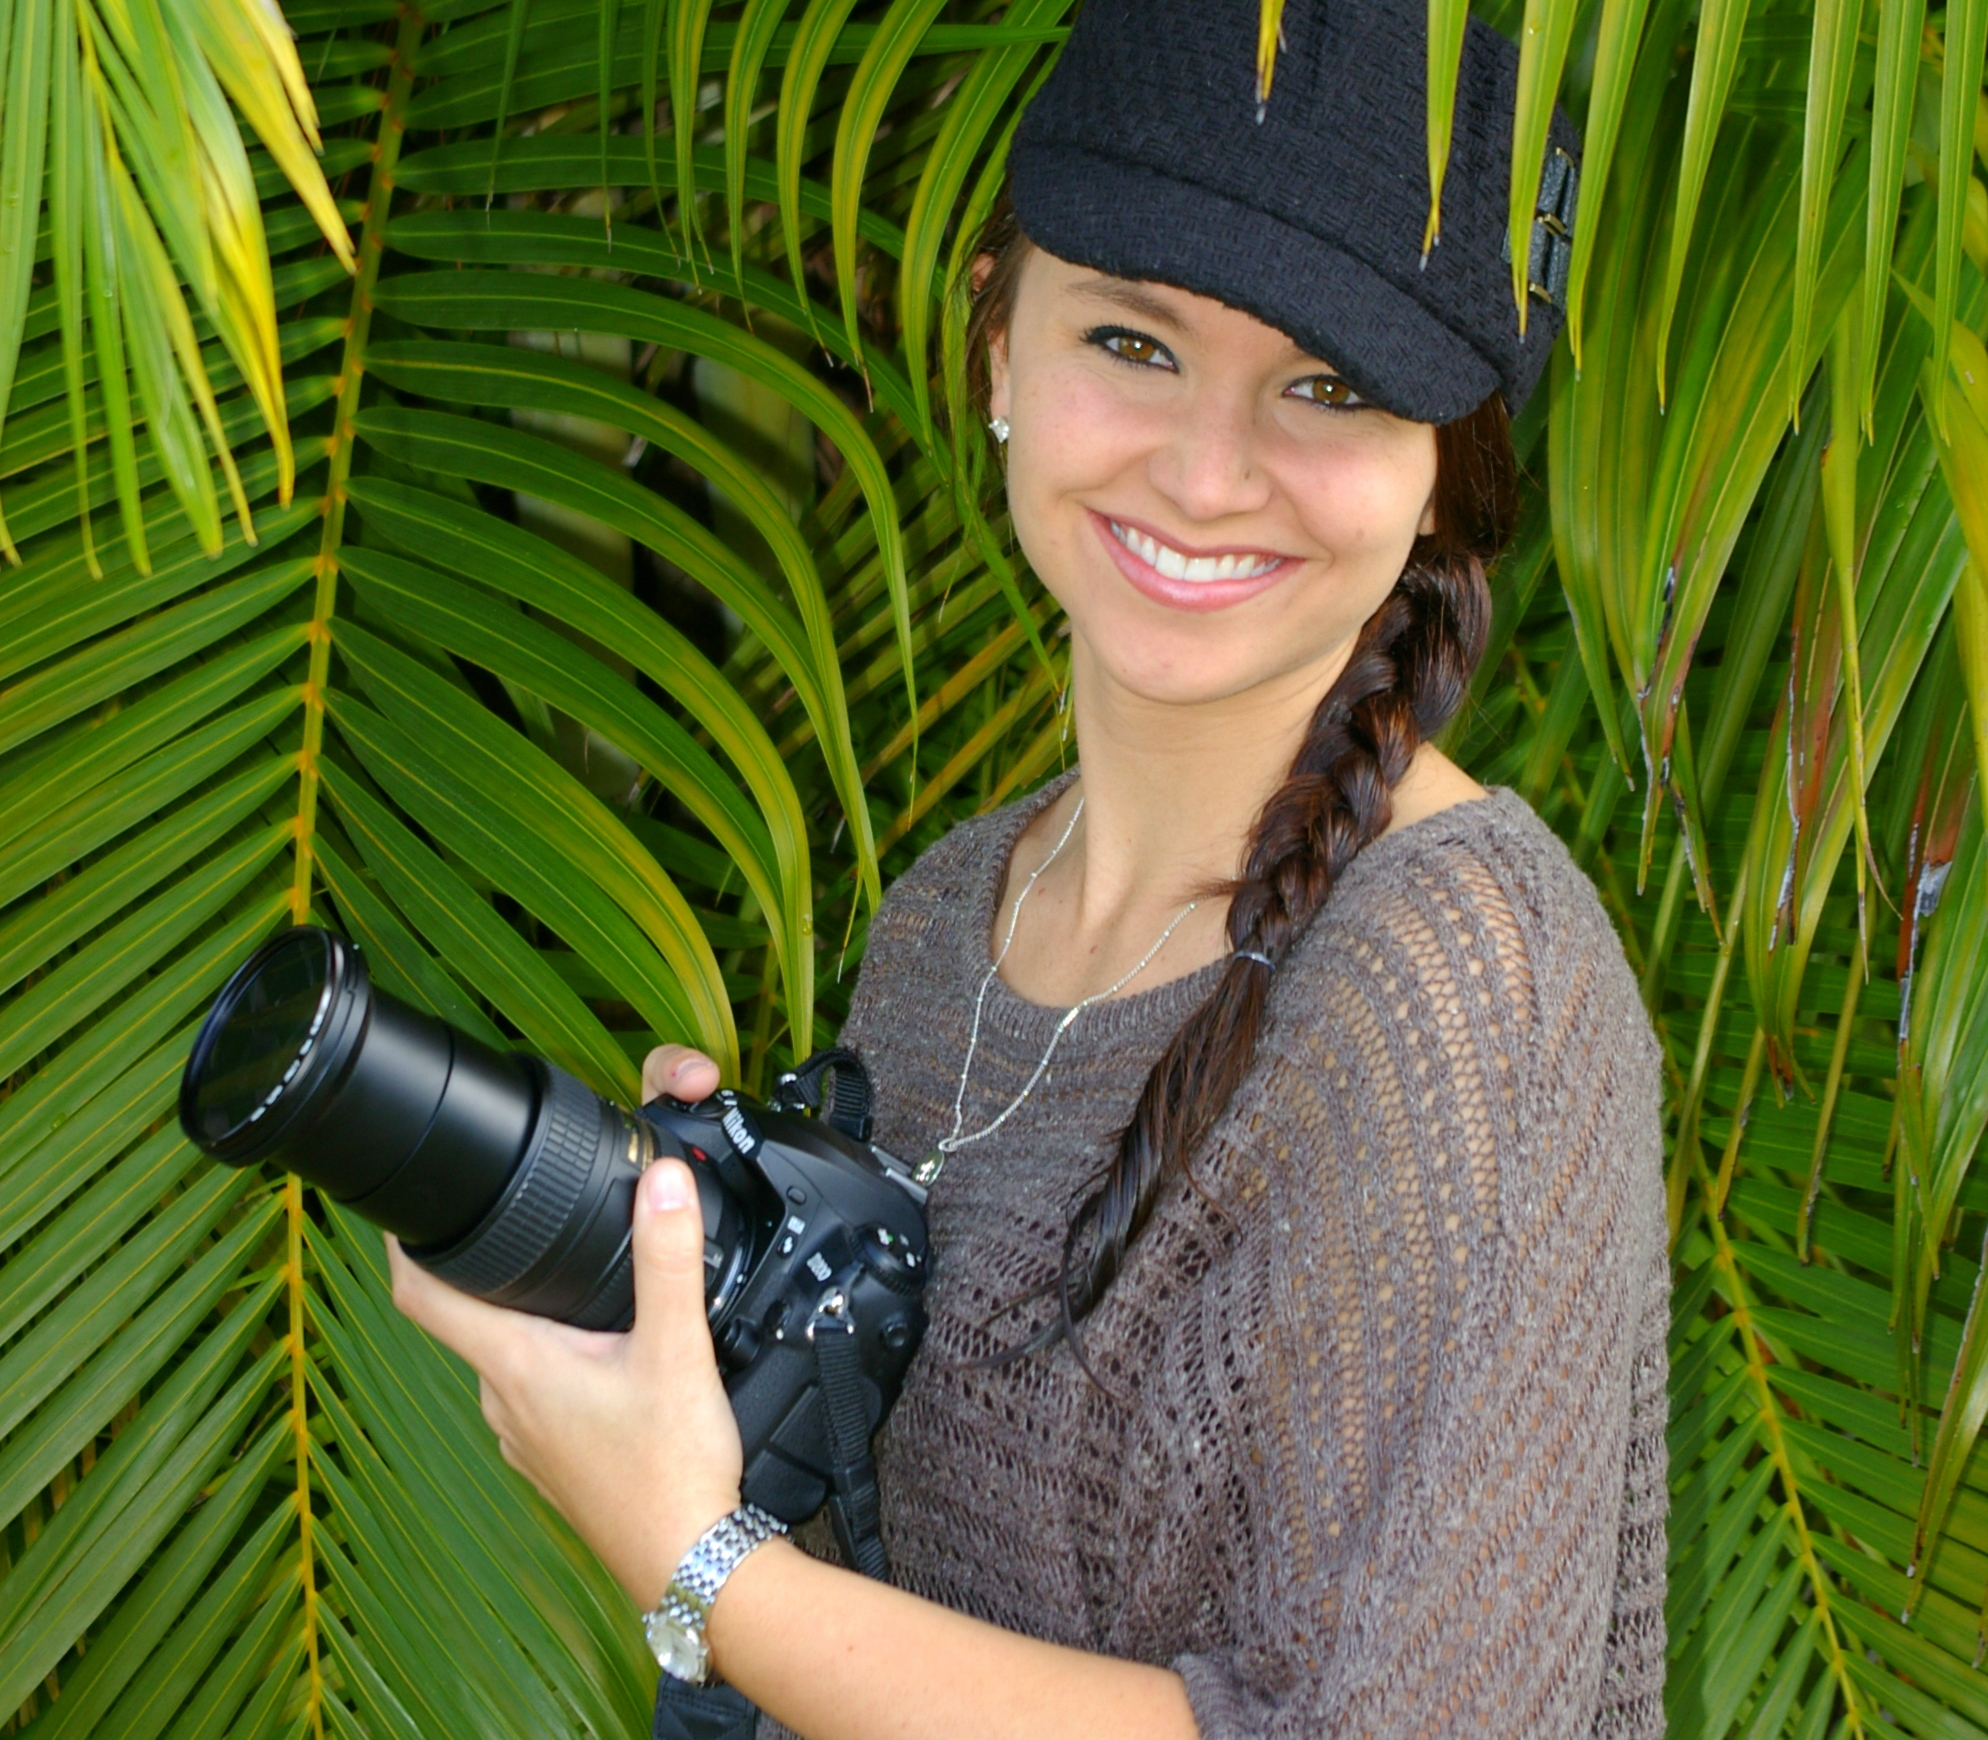 Shay Bunch, Owner & Photographer